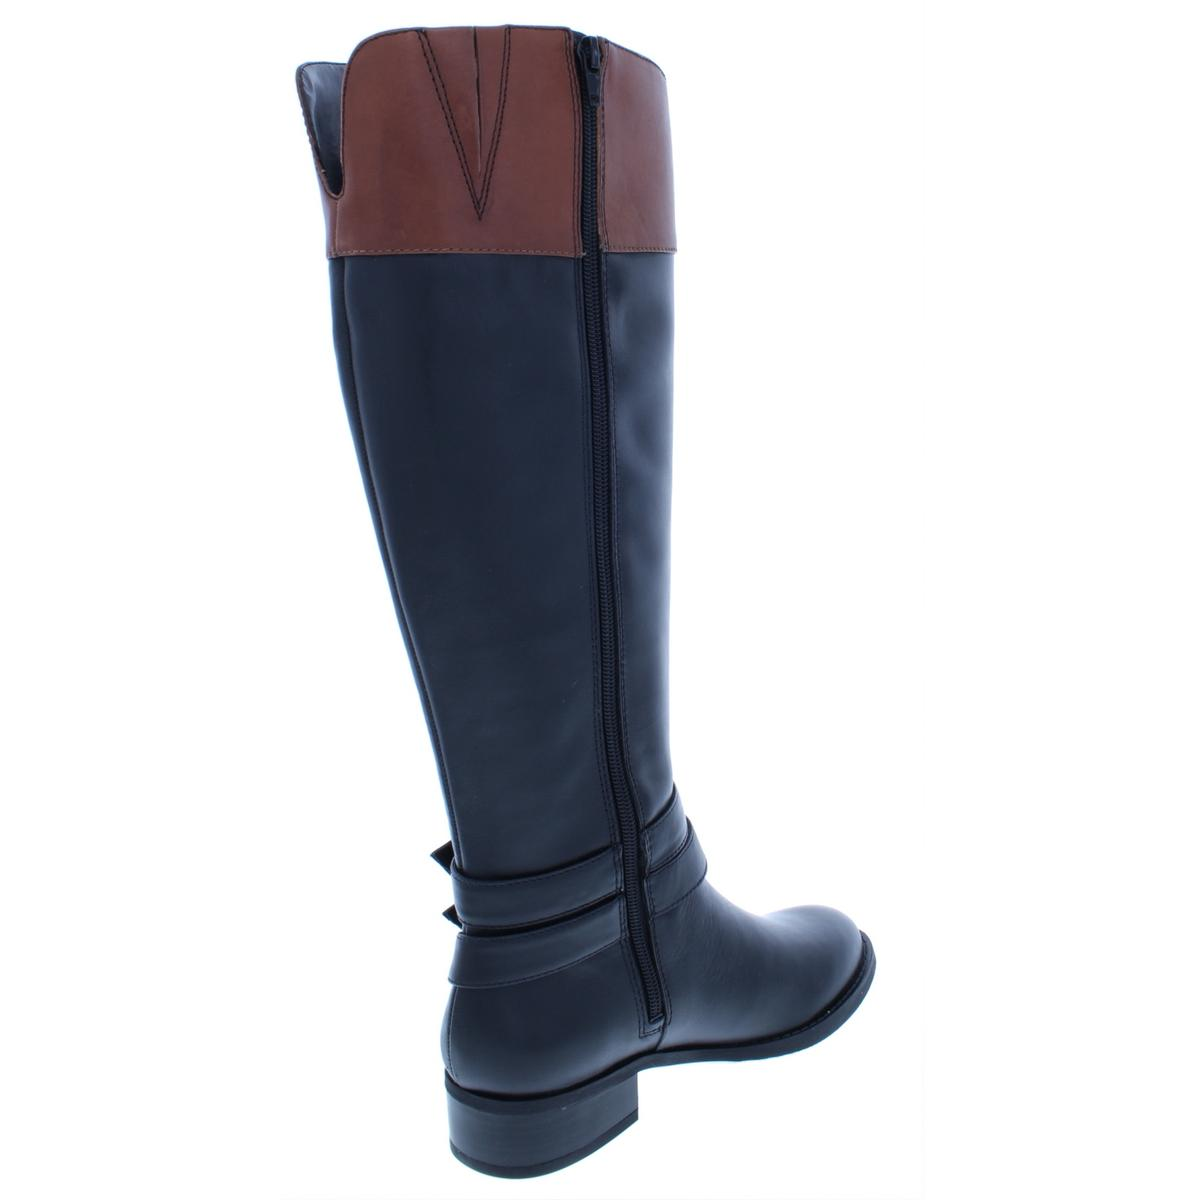 INC-Womens-Frank-II-Leather-Wide-Calf-Knee-High-Riding-Boots-Shoes-BHFO-5125 thumbnail 6